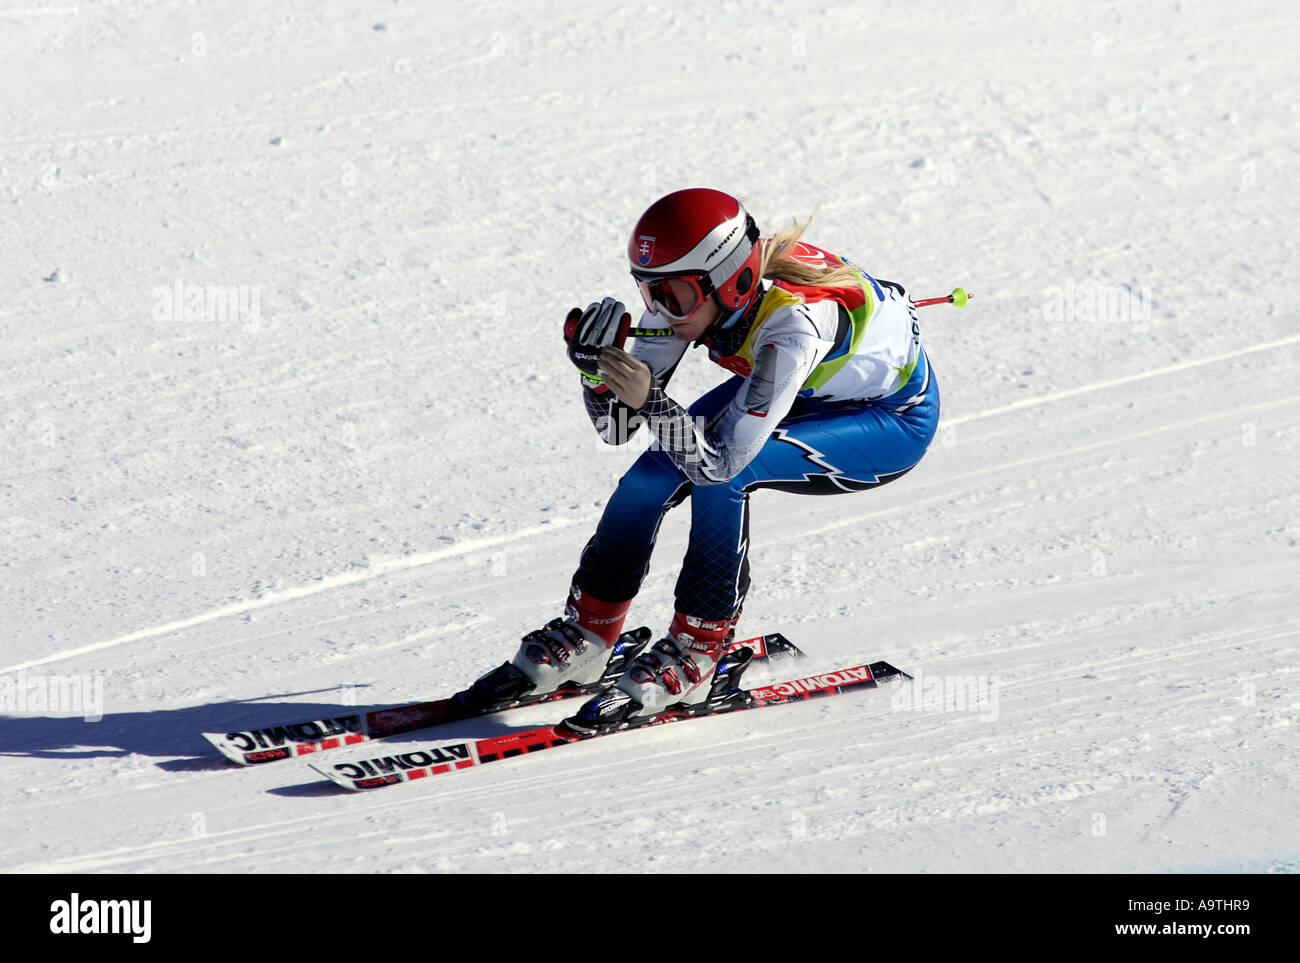 Iveta Chlebakova LW6/8-2 of Slovakia in the Womens Alpine Skiing Super G competition - Stock Image